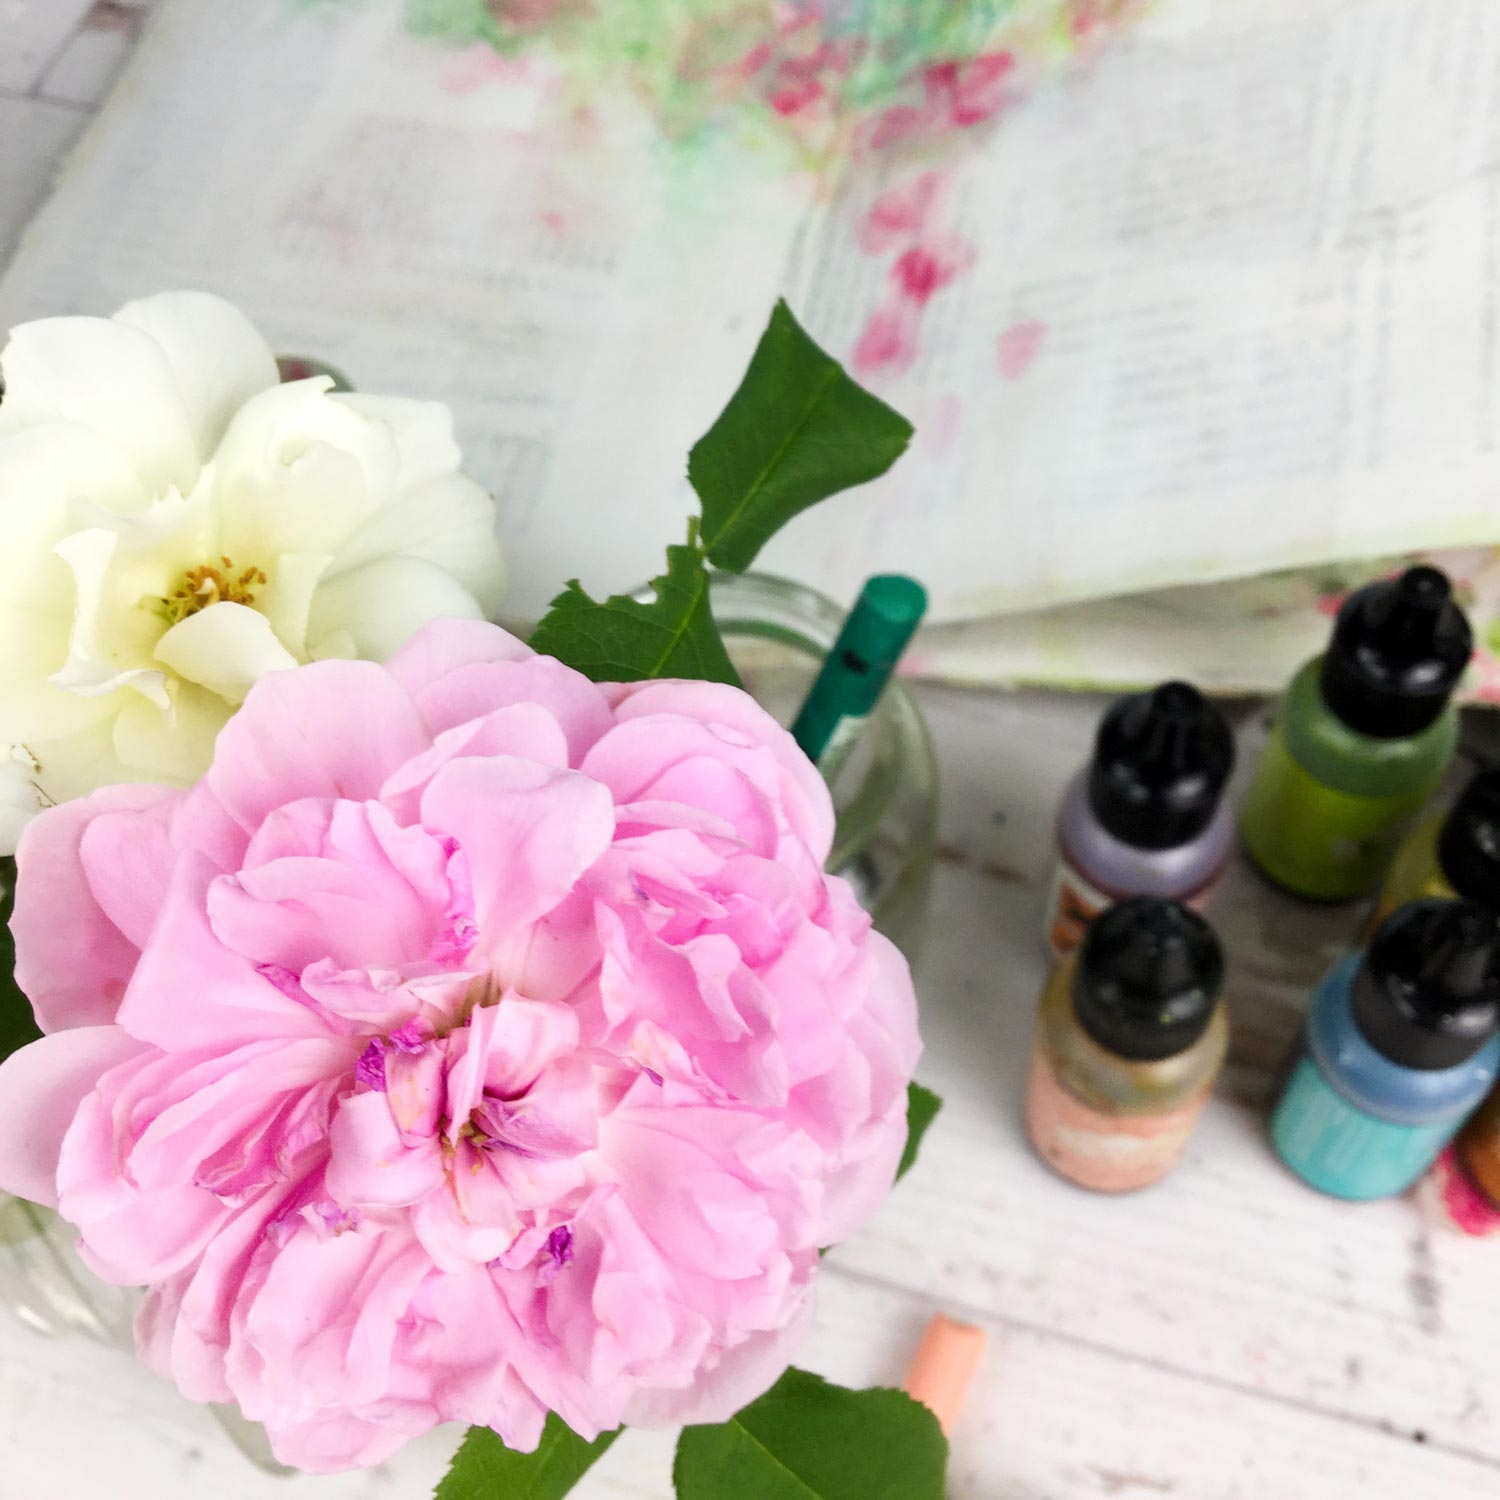 Wild Roses, floral abstract painting class with Laly Mille - https://www.lalymille.com/wildroses